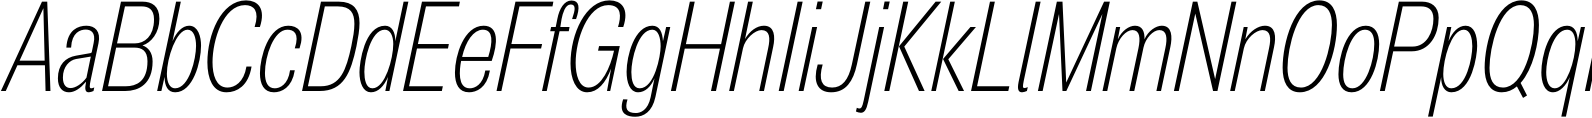 Air Compressed Ultra Light Oblique Font